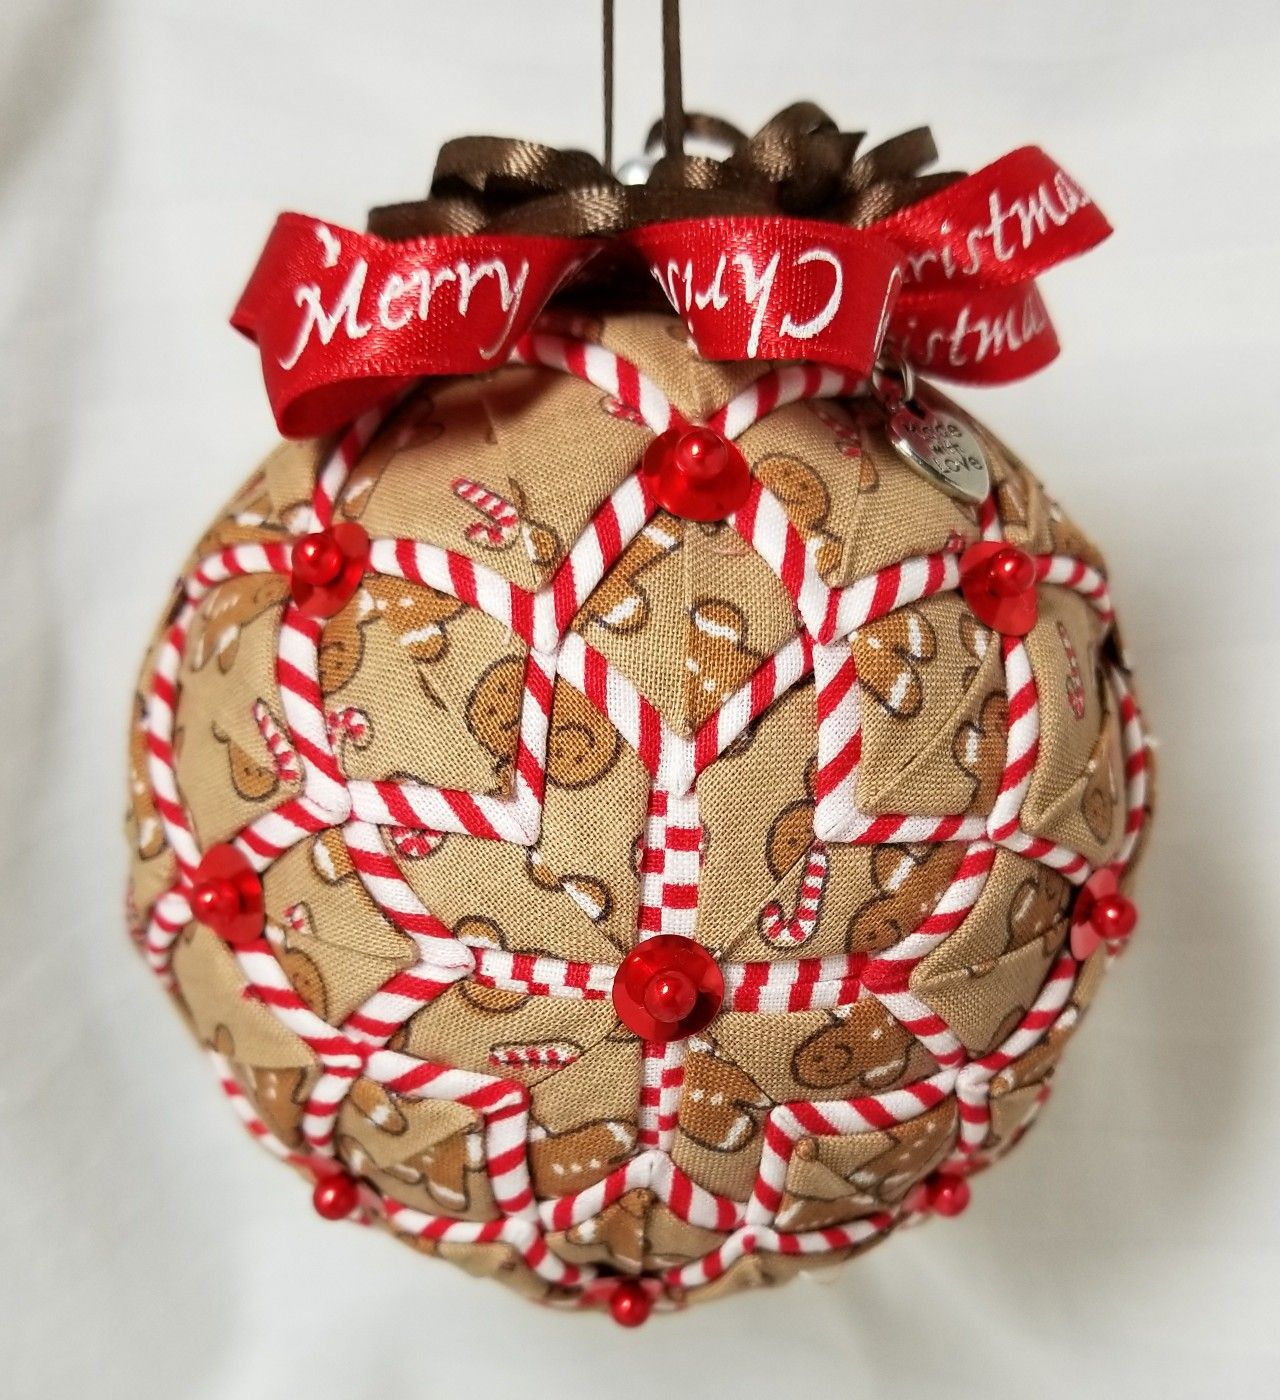 Folded Fabric Ornament Ball Made By Kathy Hatch Fabric Christmas Ornaments Quilted Christmas Ornaments Christmas Ornaments Homemade